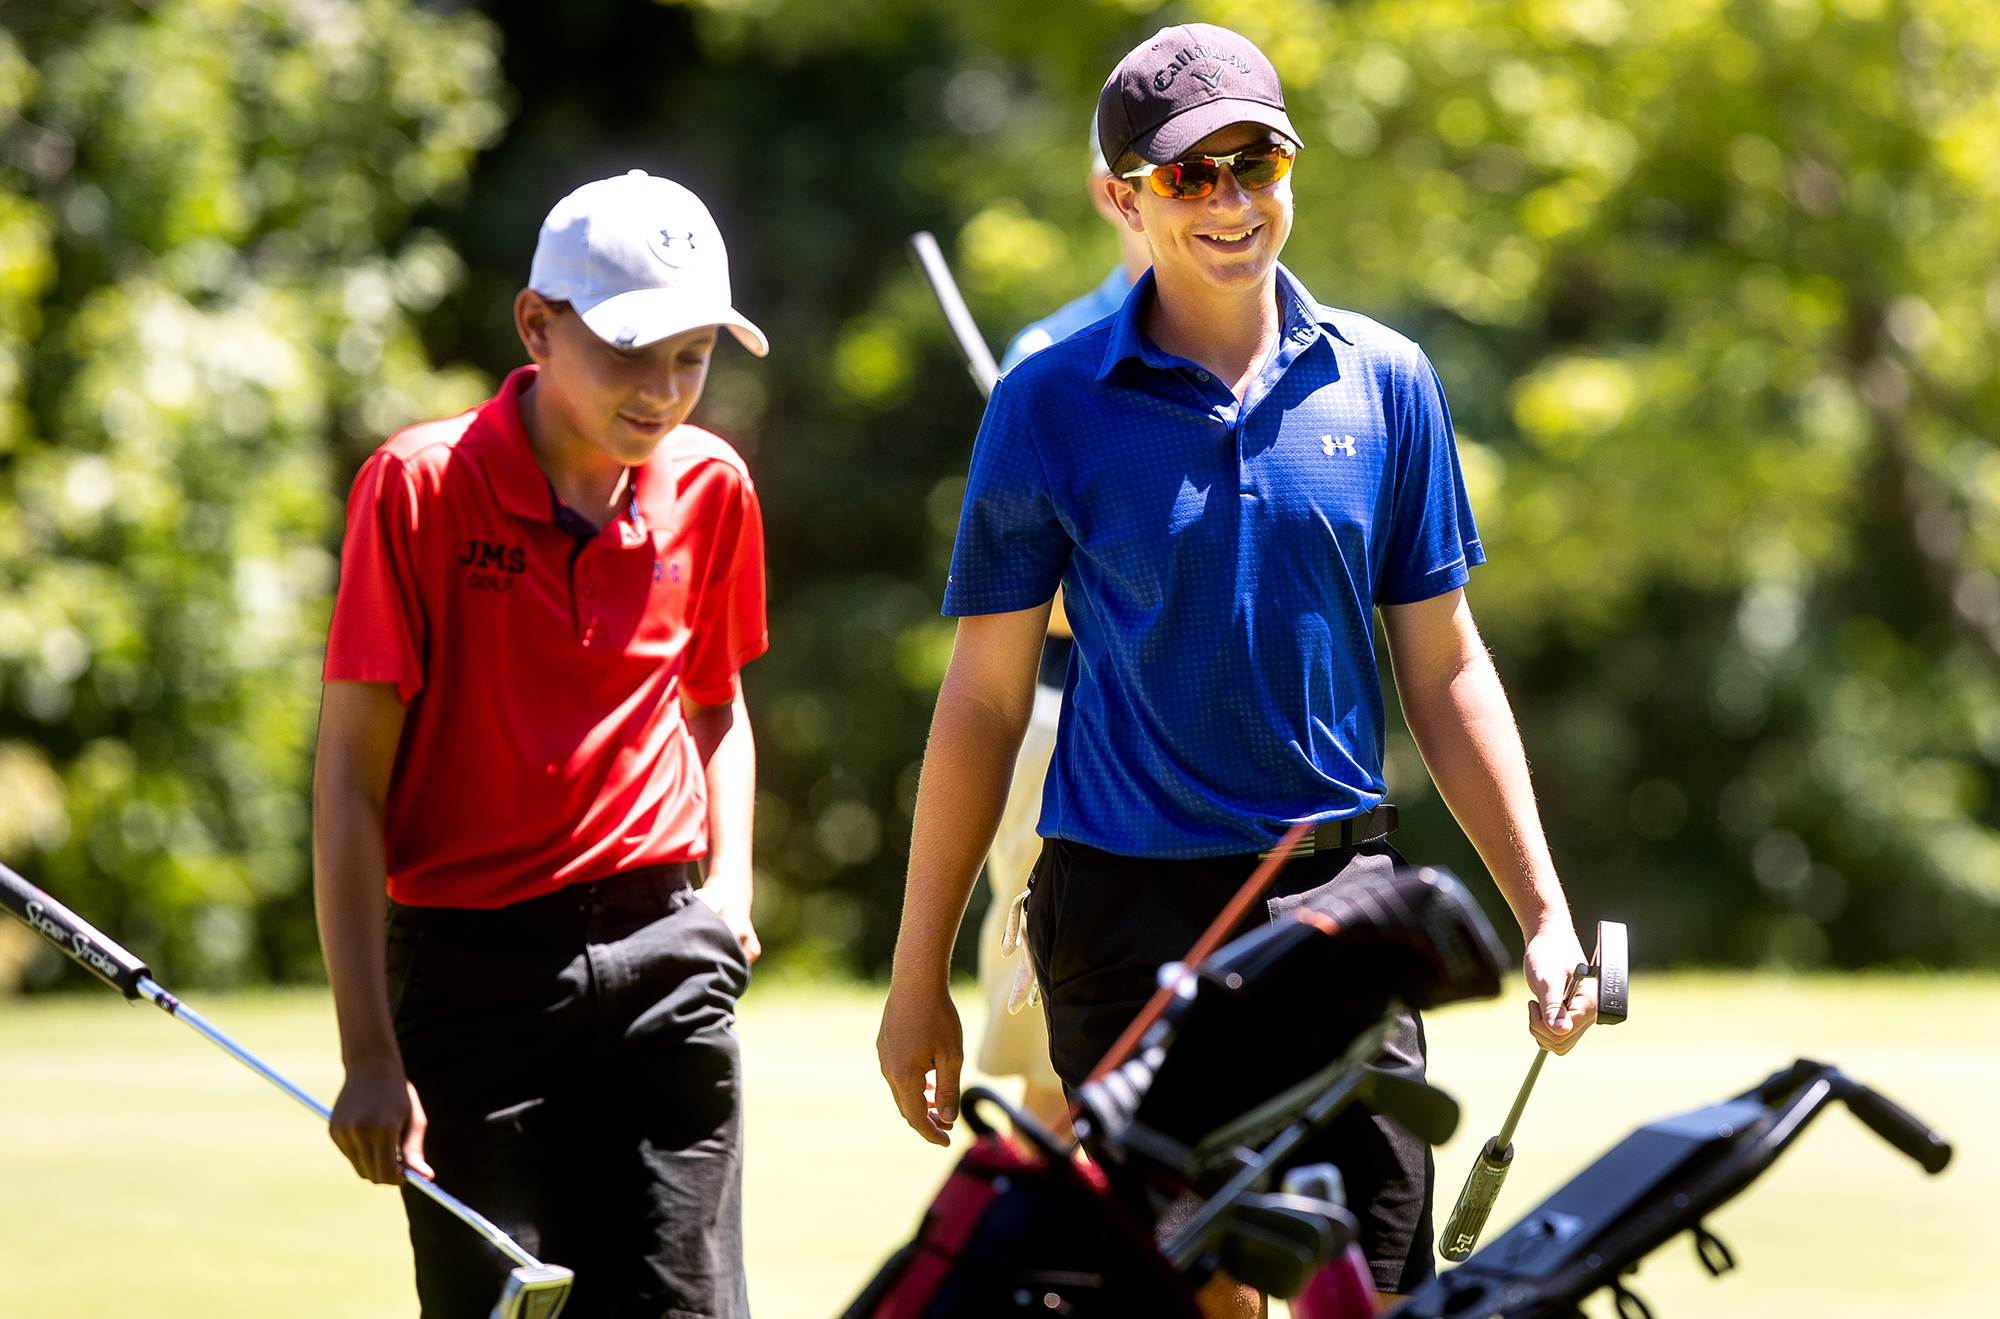 A usually friendly game between cousins, Tysyn Mast, left, and Aydin Folker, was competitive Wednesday, July 11, 2018 when the boys played each other for a berth in the championship flight title match of the Drysdale Junior Golf Tournament at Bunn Golf Course in Springfield, Ill. Folker's par on the 18th green gave up a 1-up semifinal decision over Mast. [Rich Saal/The State Journal-Register]